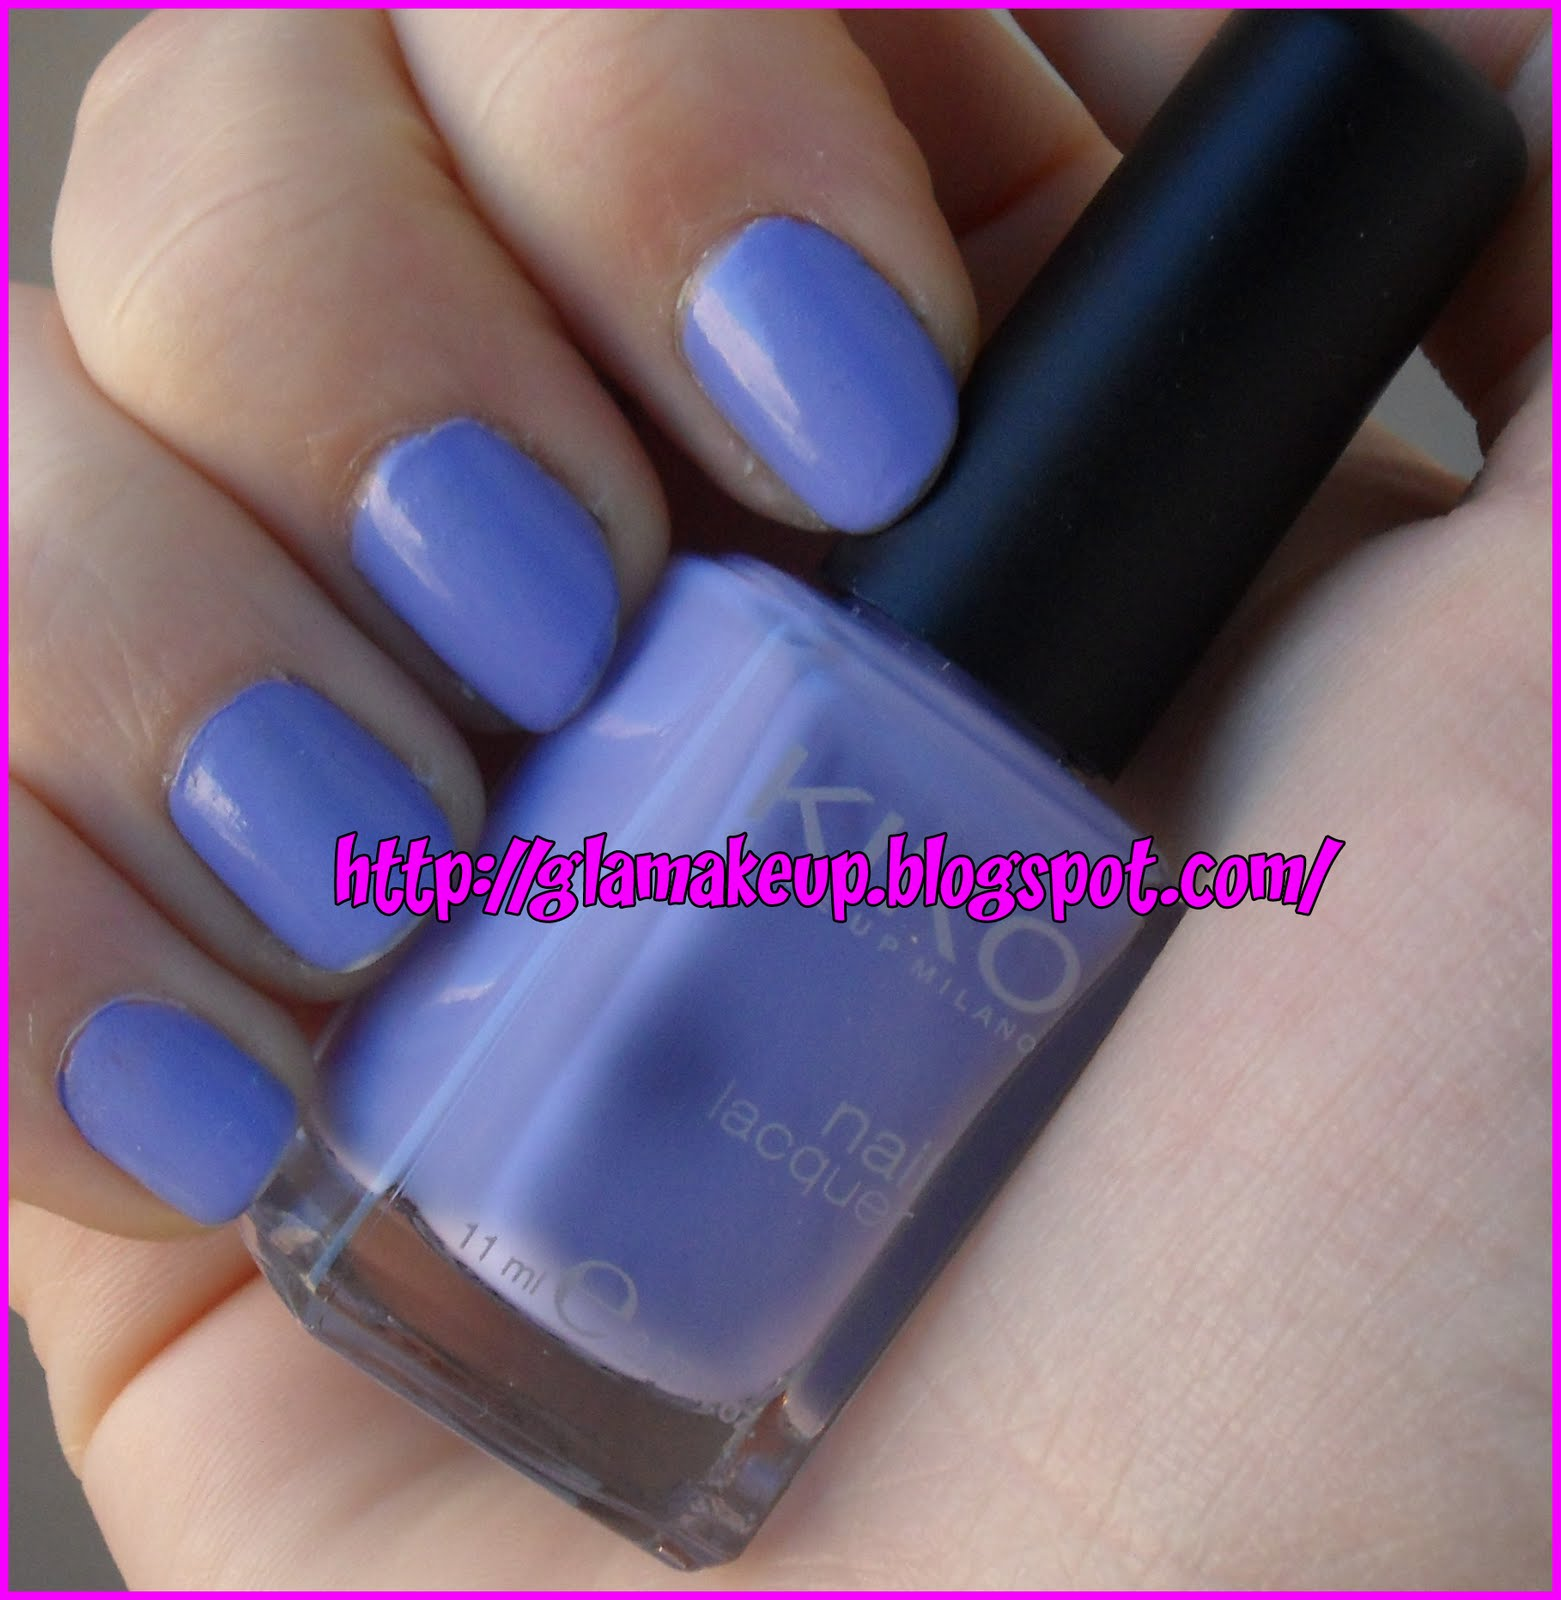 Glamakeup: Spring 2011 Nail Polishes: Blue Toned Lilac